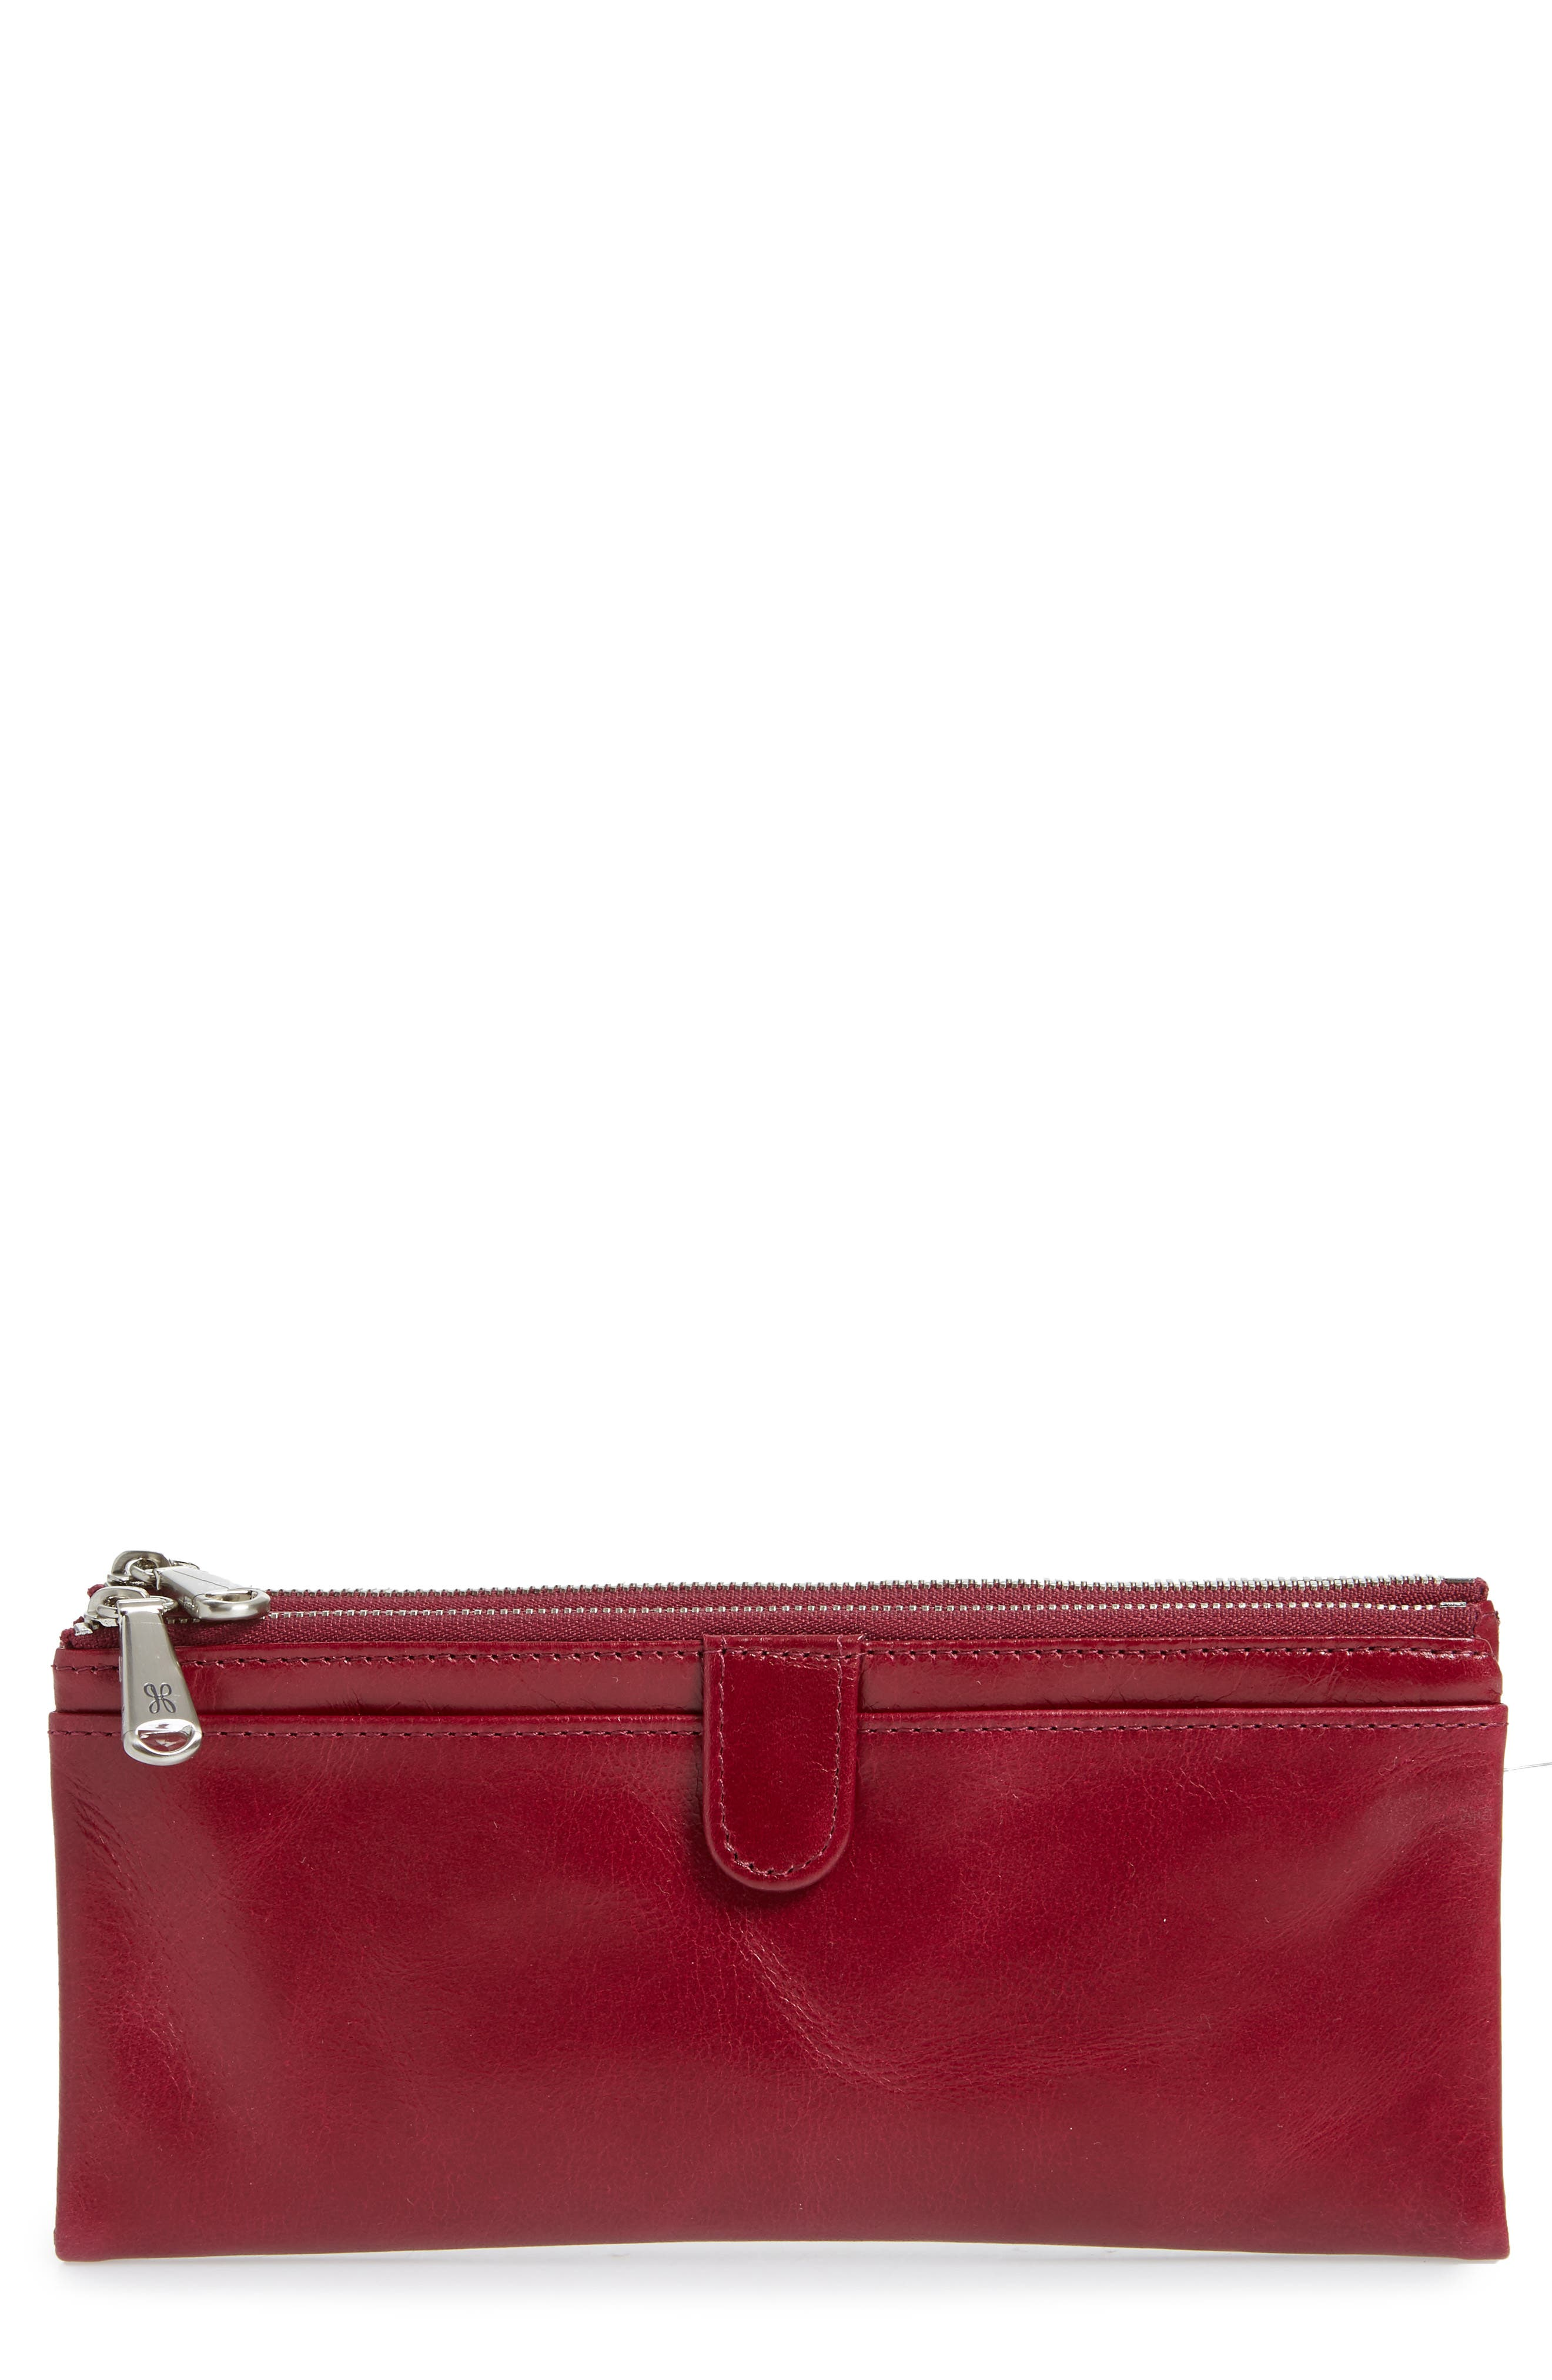 Taylor Glazed Wallet,                             Main thumbnail 1, color,                             RUBY